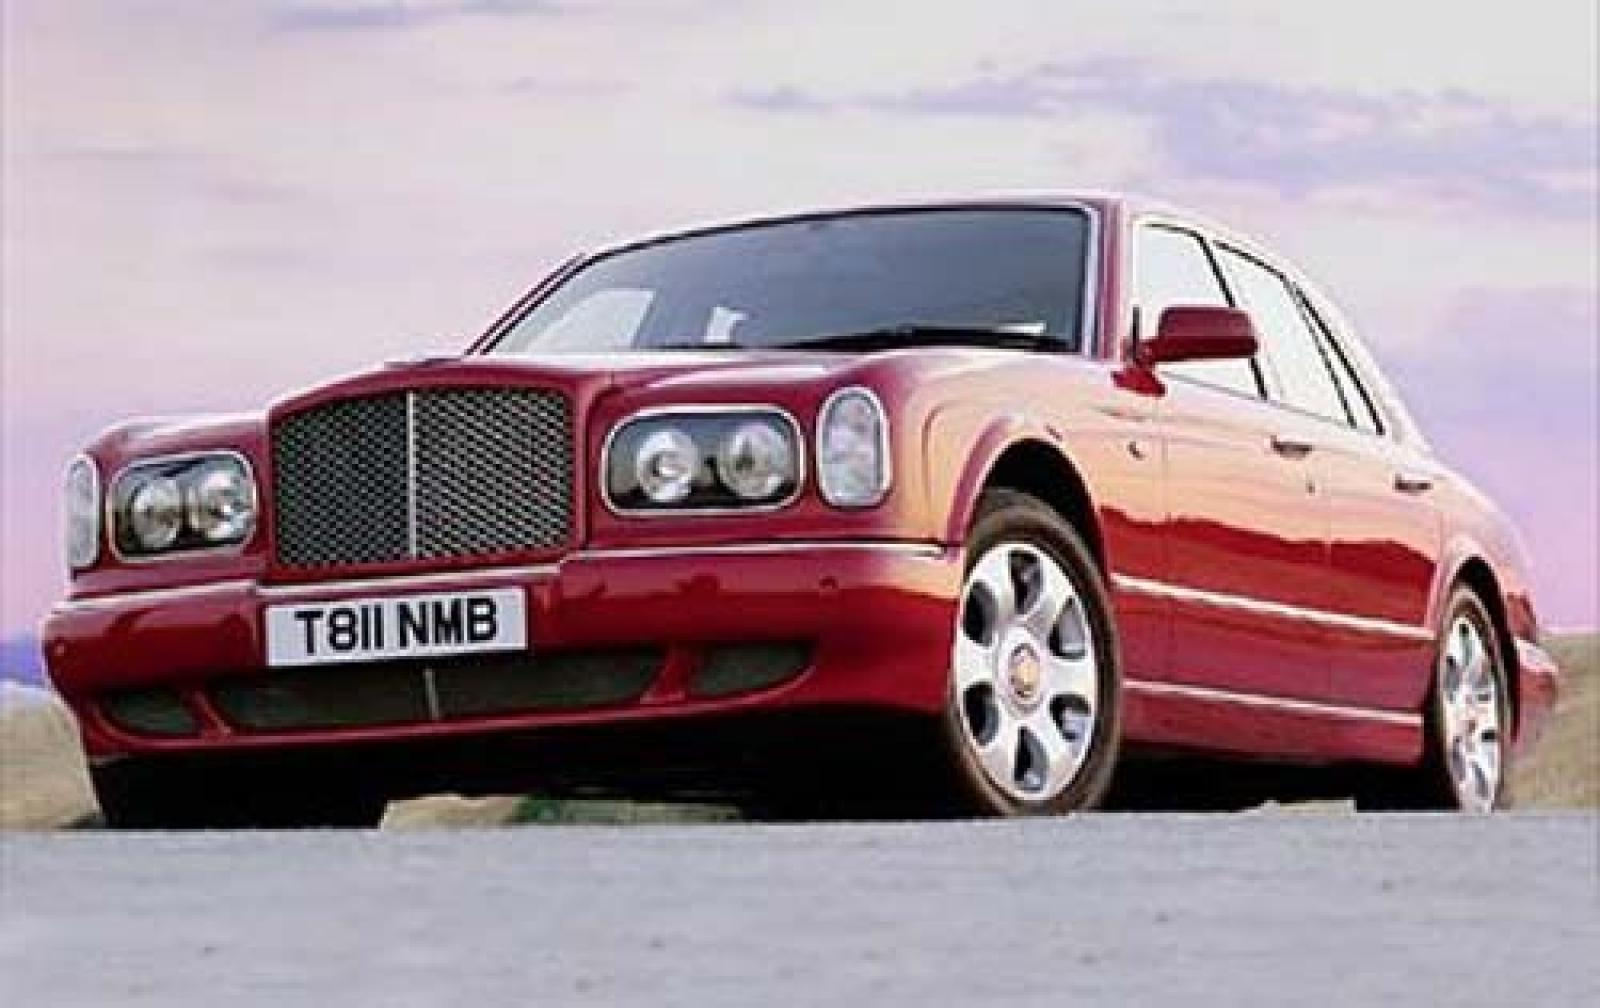 2002 bentley arnage information and photos zombiedrive bentley gallery vanachro Choice Image